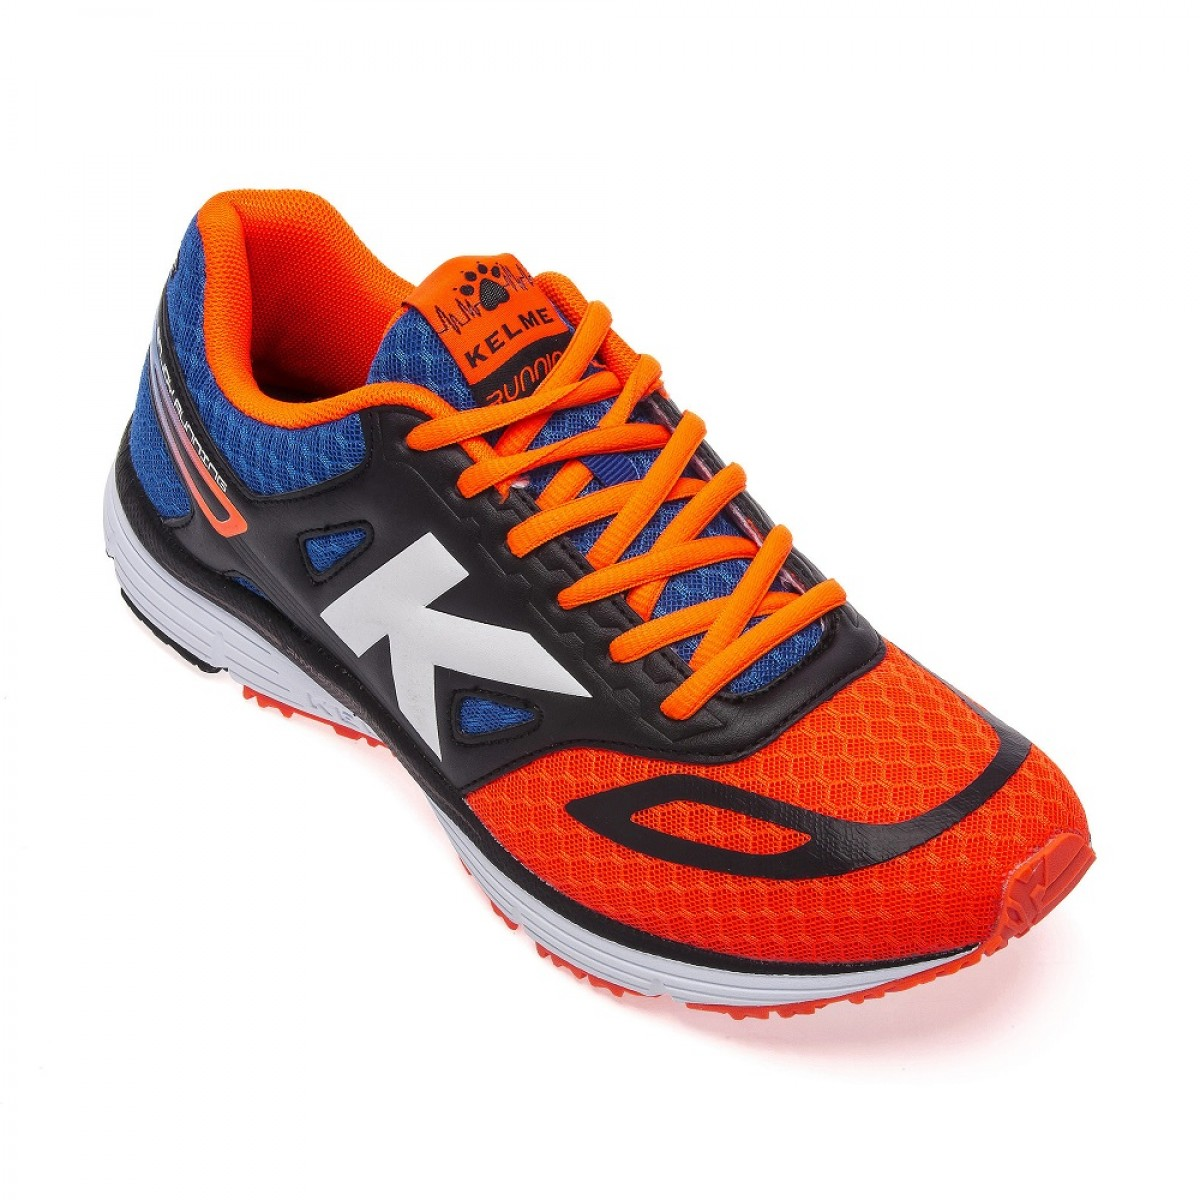 Kelme Boston Kush